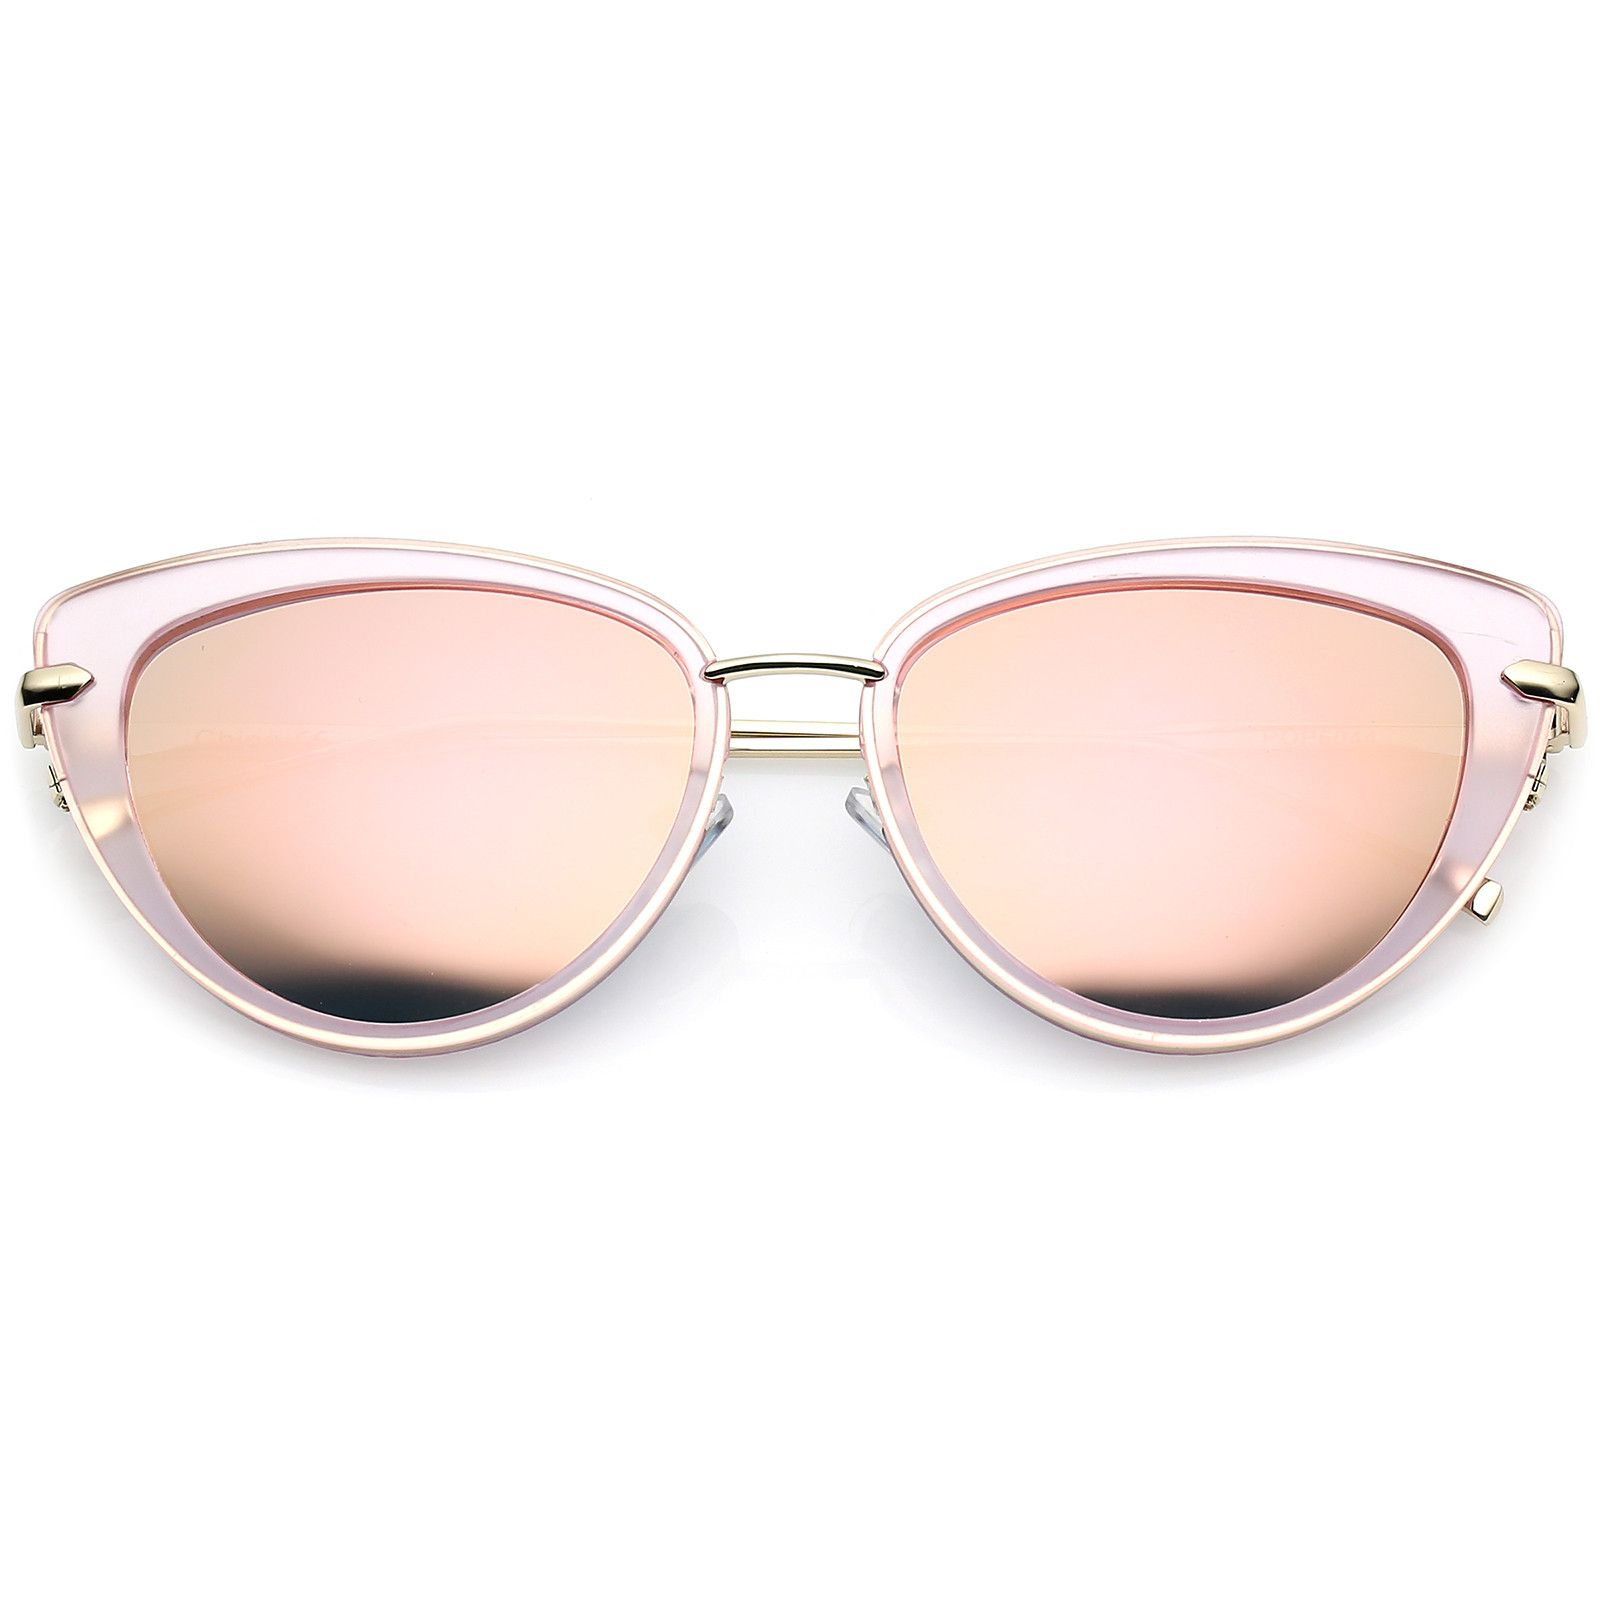 Exaggerated Oval Cat Eye Sunglasses Slim Metal Arms 55mm   Cat eyes